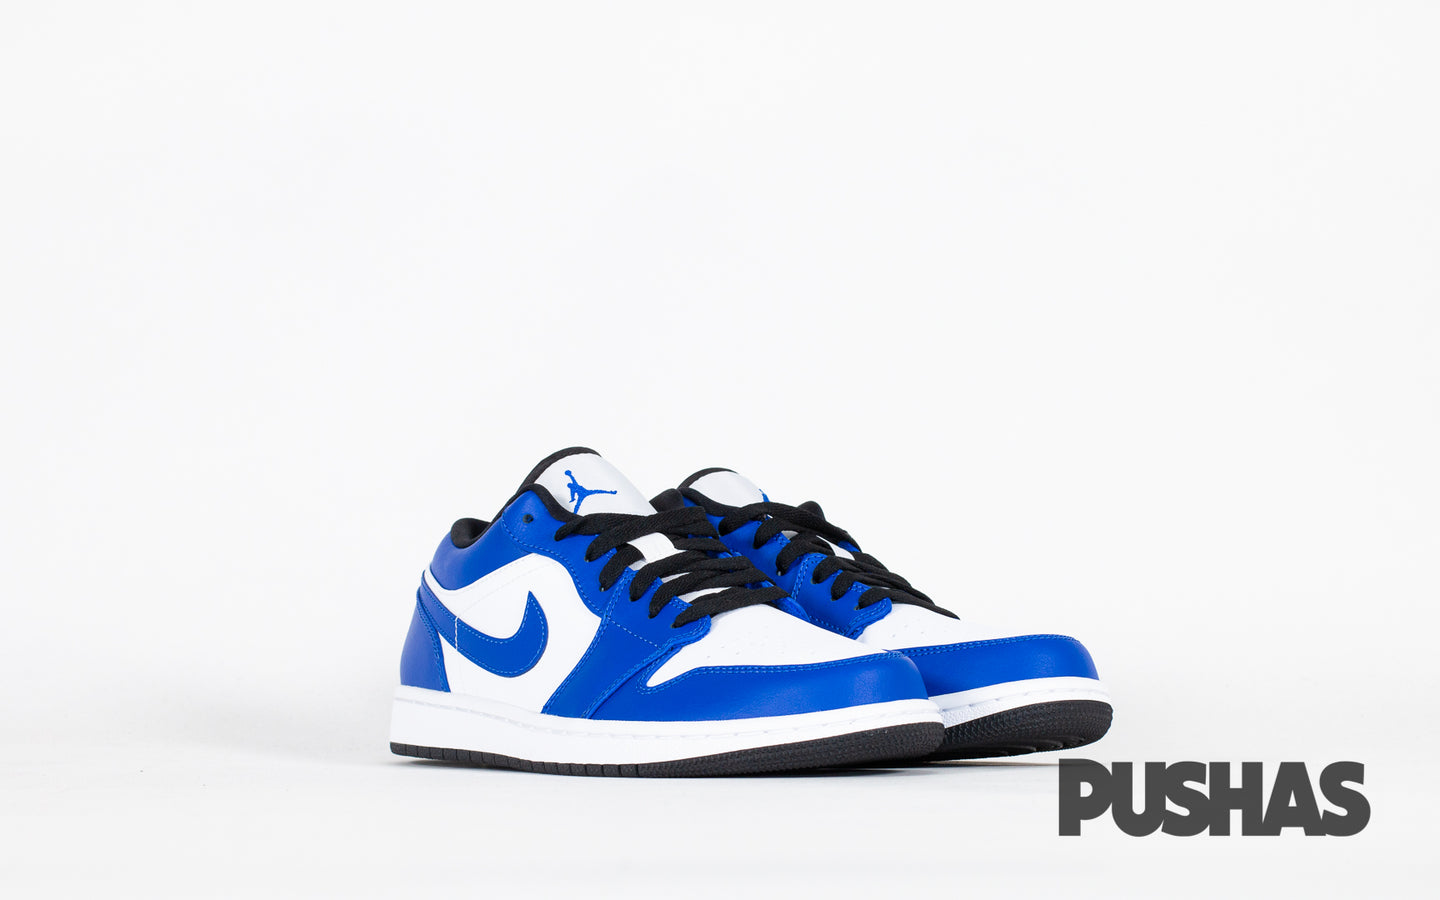 pushas-nike-Air-Jordan-1-Low-Game-Royal-GS